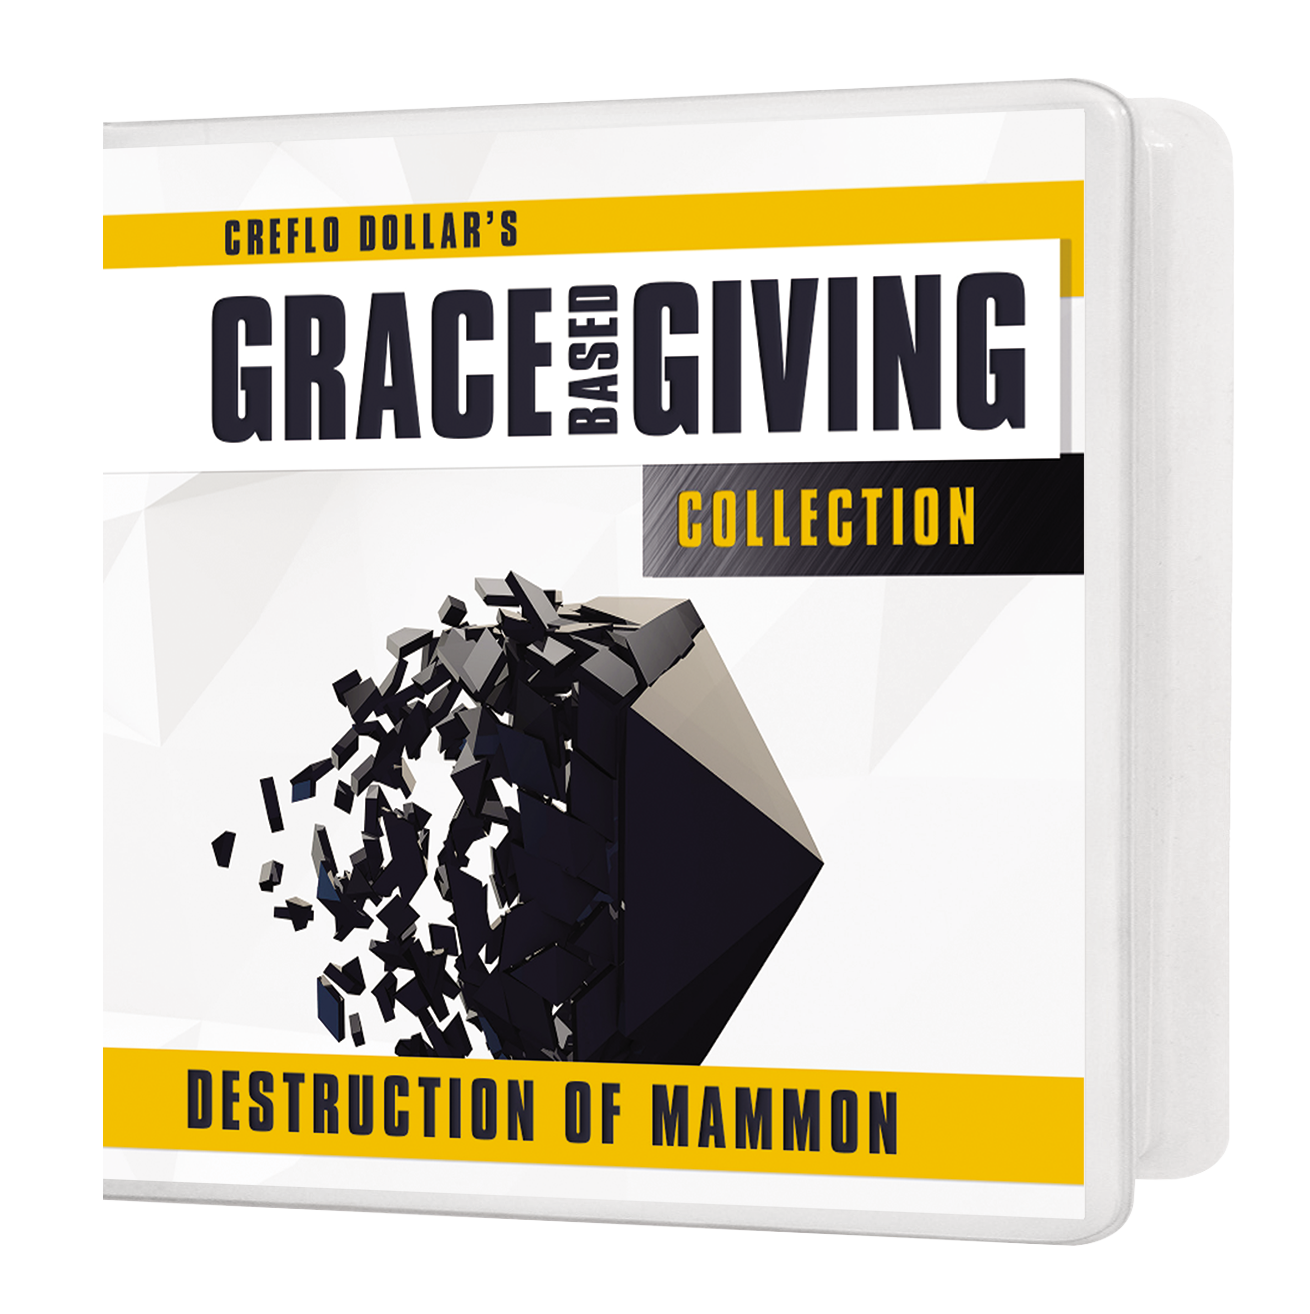 Grace-Based Giving Collection: Destruction of Mammon - 20 Message Series